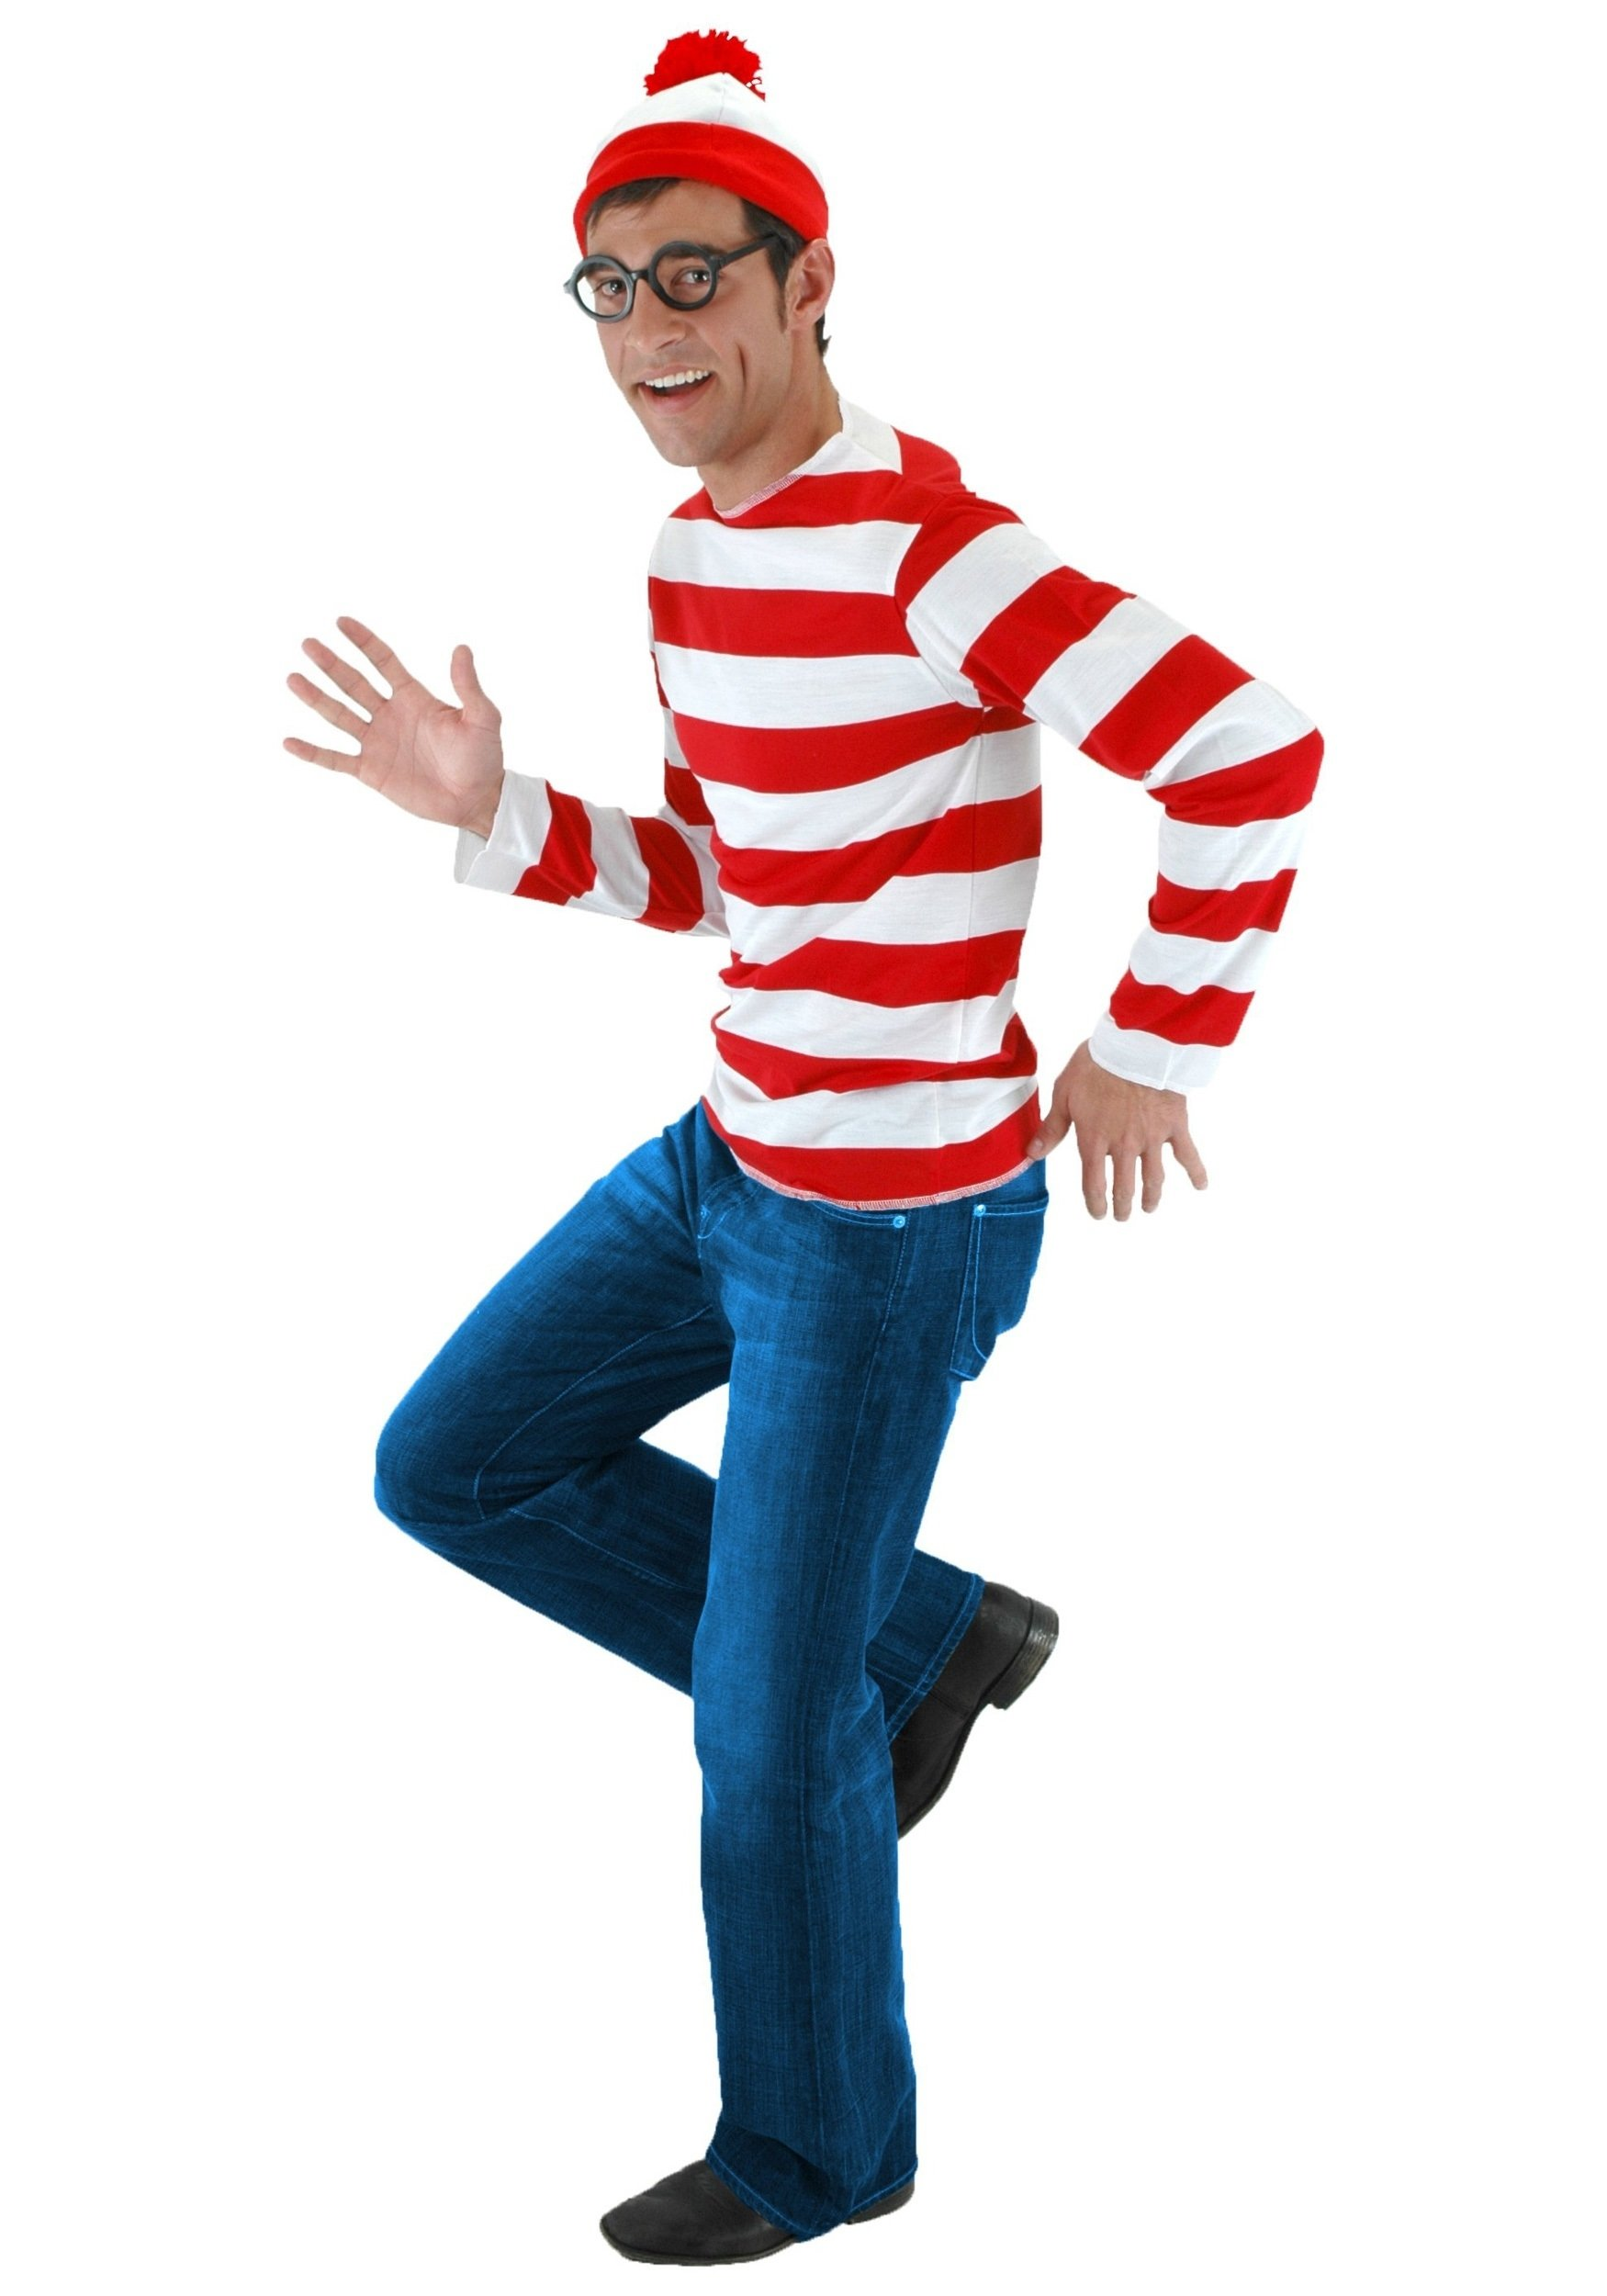 10 Awesome Halloween Costume Ideas For Men wheres waldo costume exclusive sizes available 13 2020